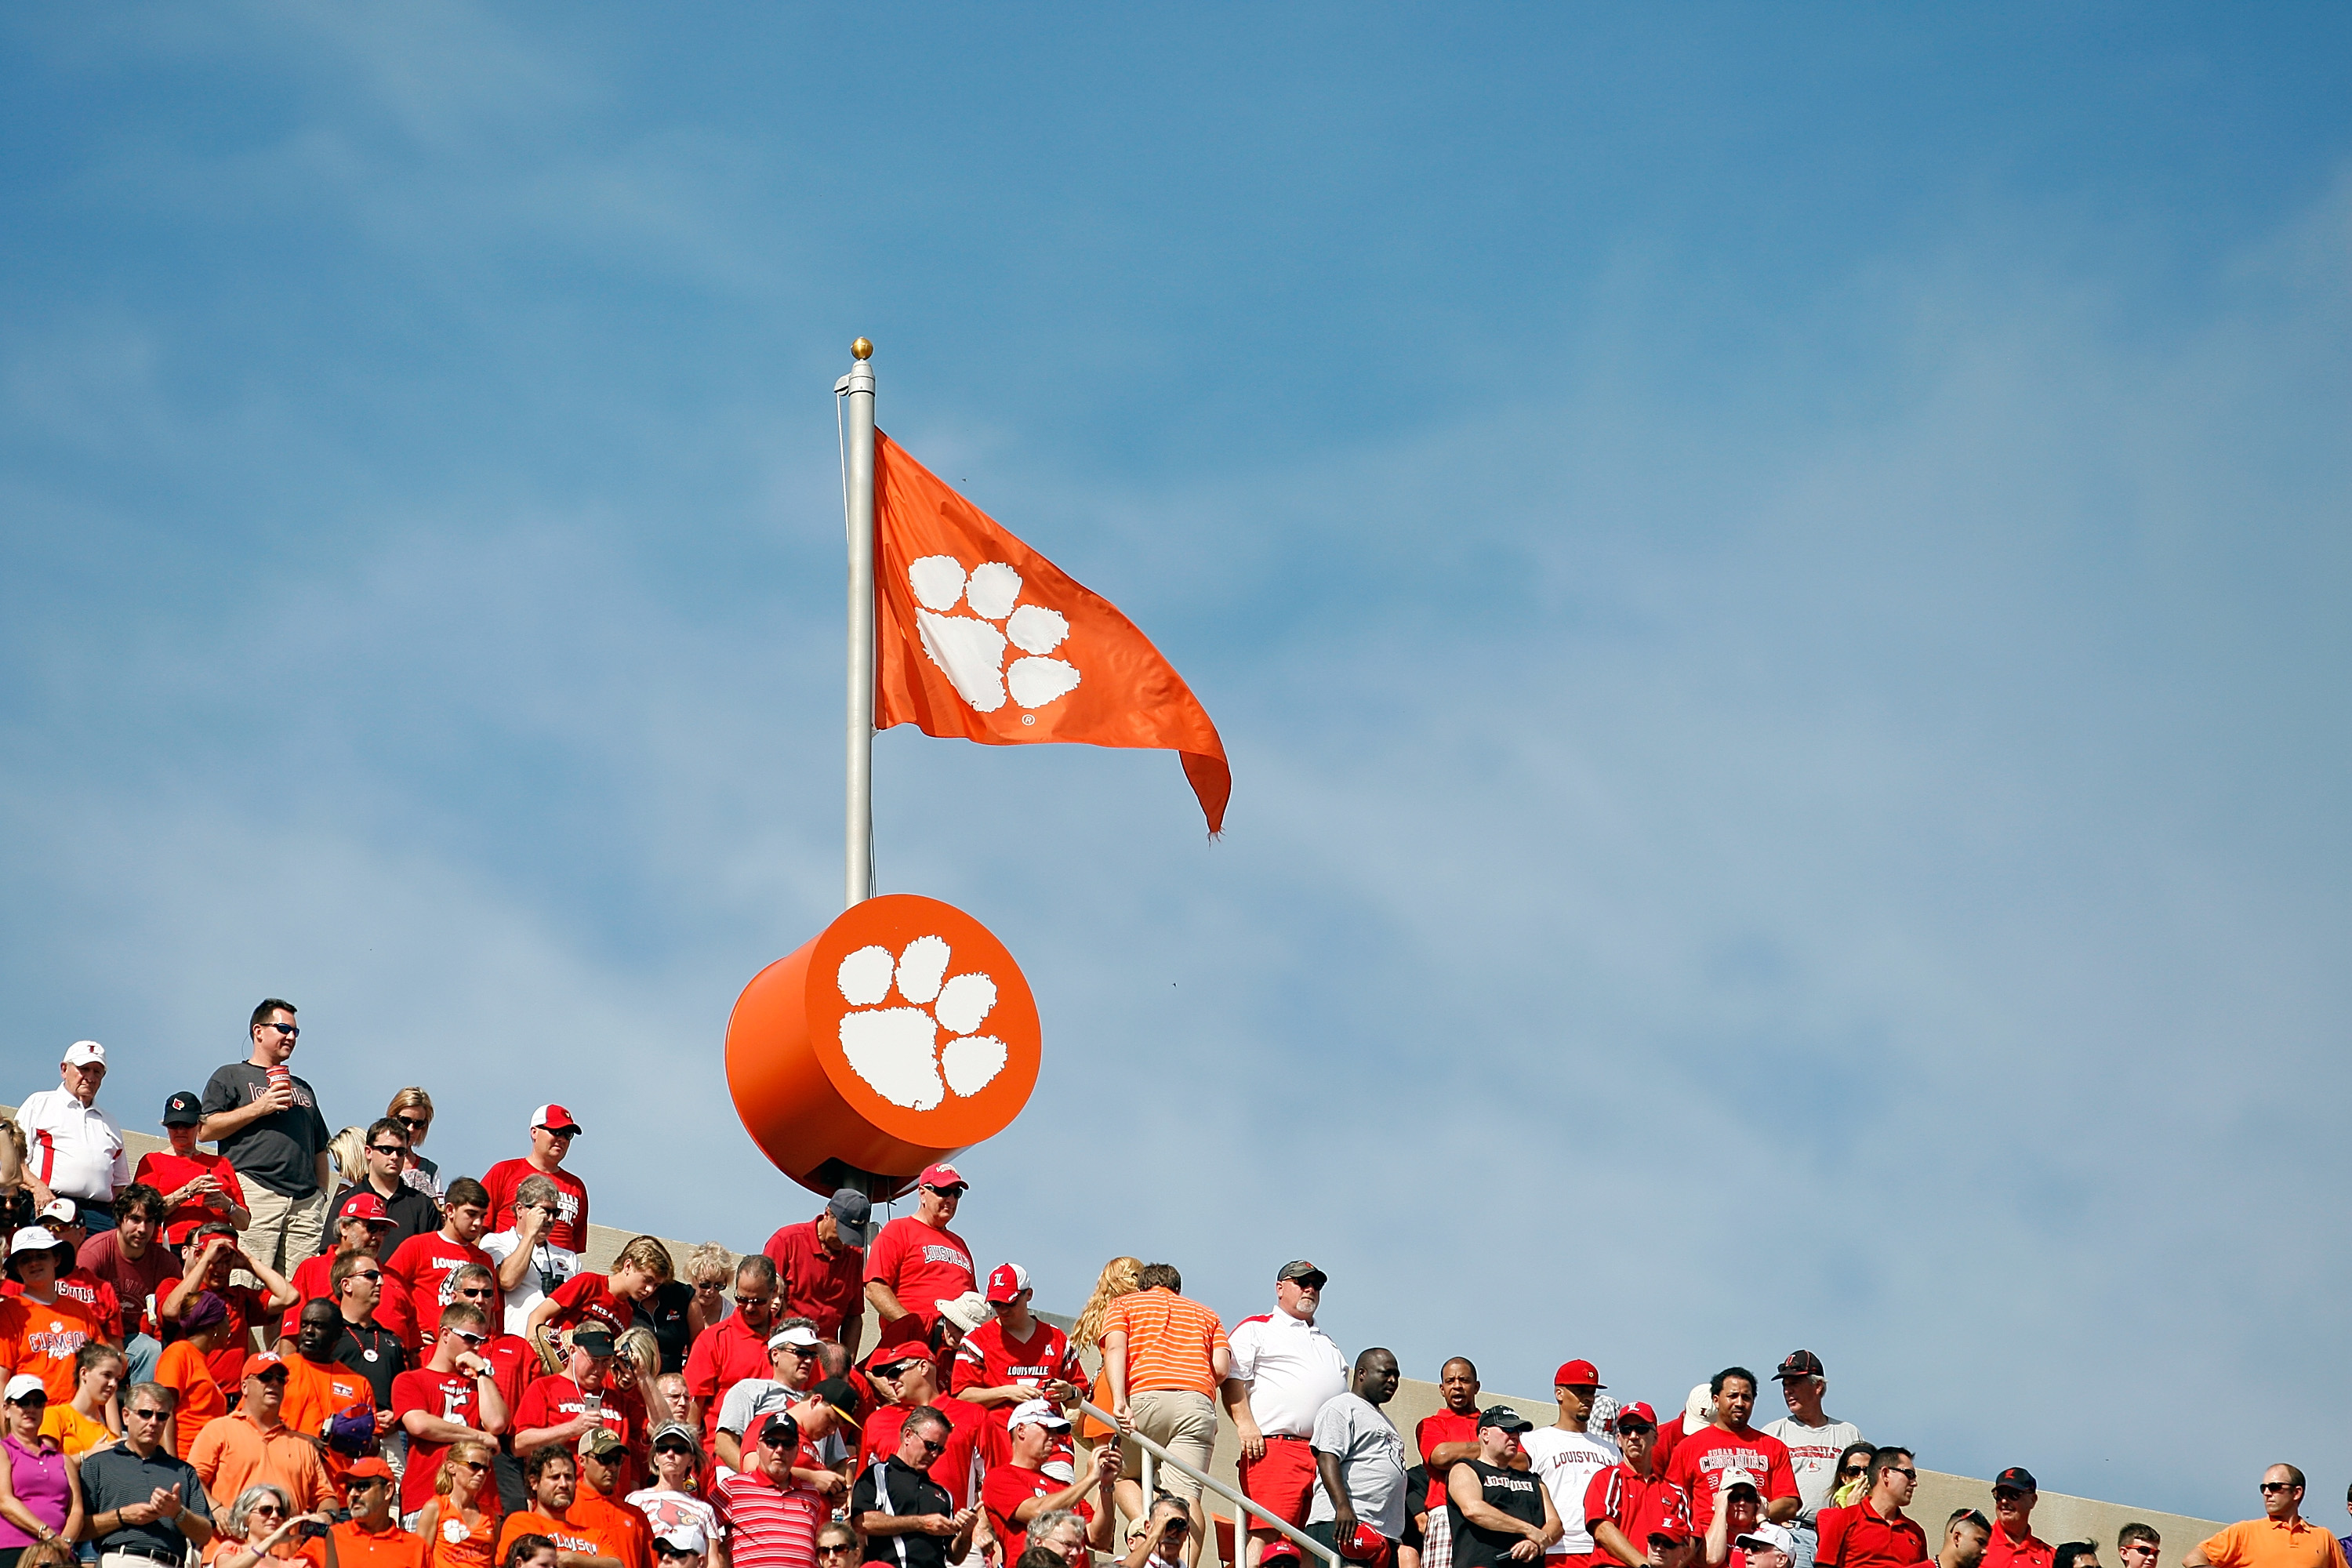 A Clemson flag flies above Memorial Stadium during the game between the Clemson Tigers and Louisville Cardinals in Clemson, S.C. on Oct. 11, 2014.